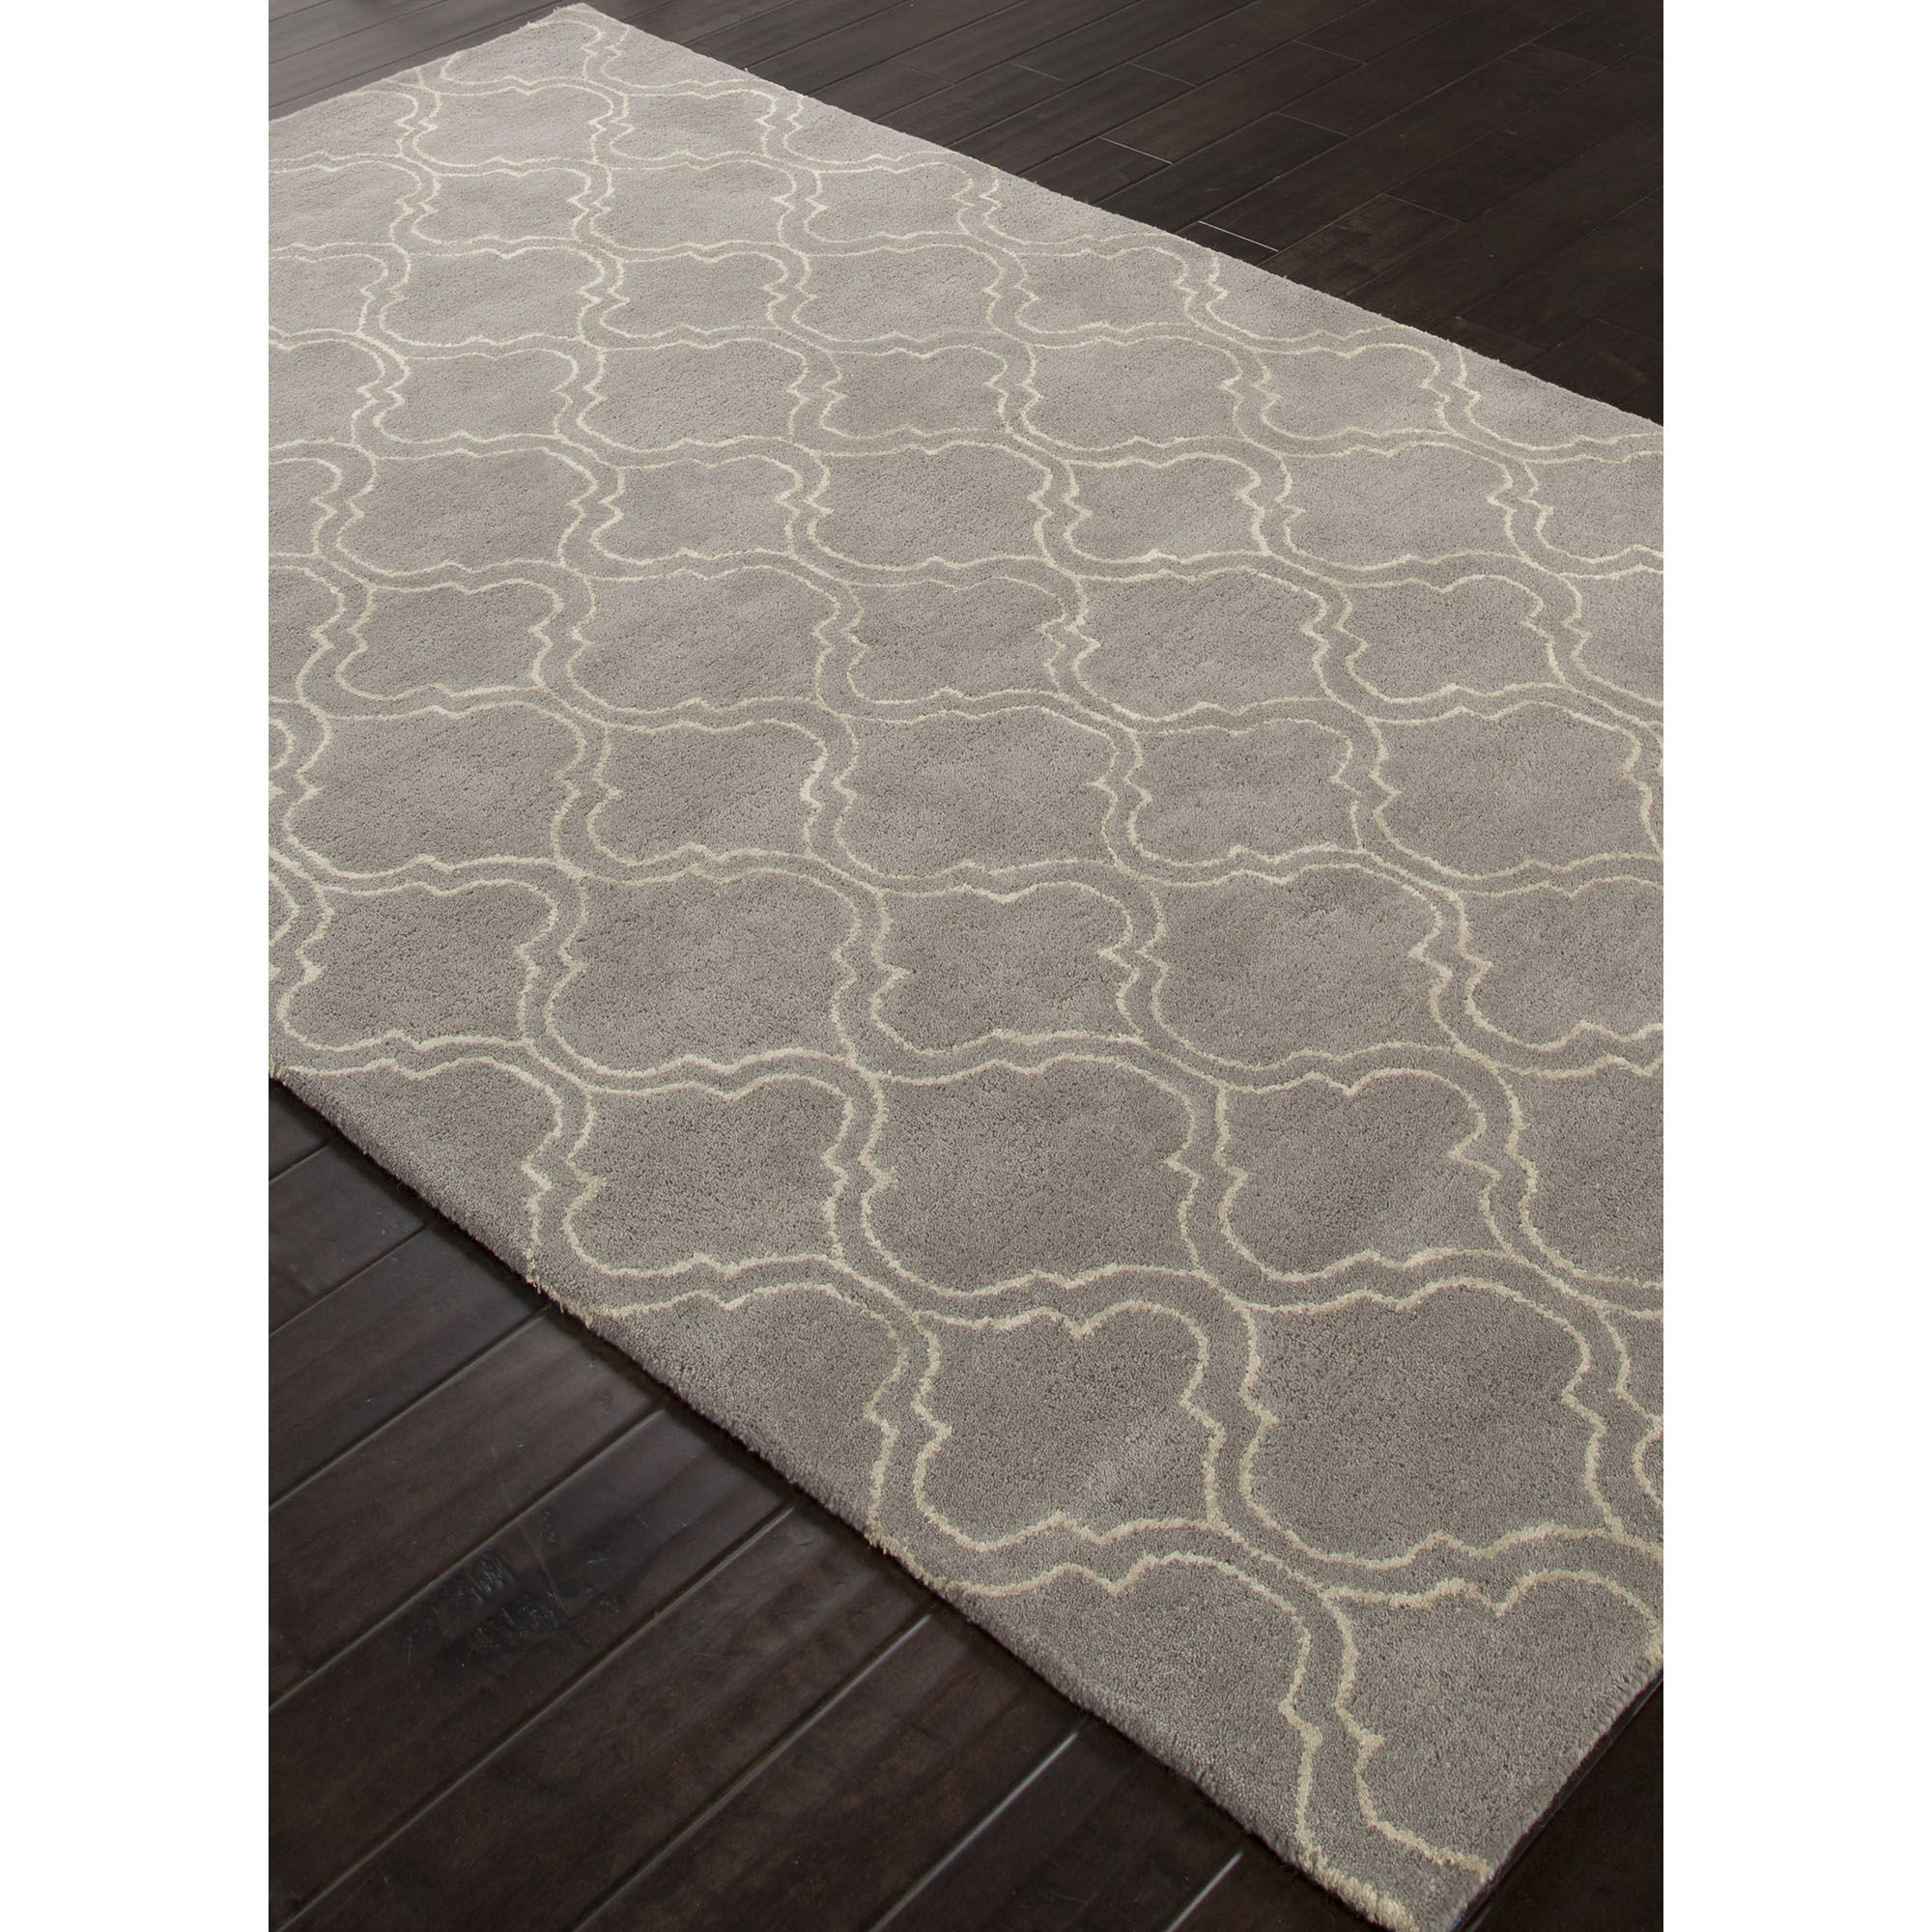 Orson Hand-Woven Gray/Ivory Area Rug Rug Size: Rectangle 8' x 11'